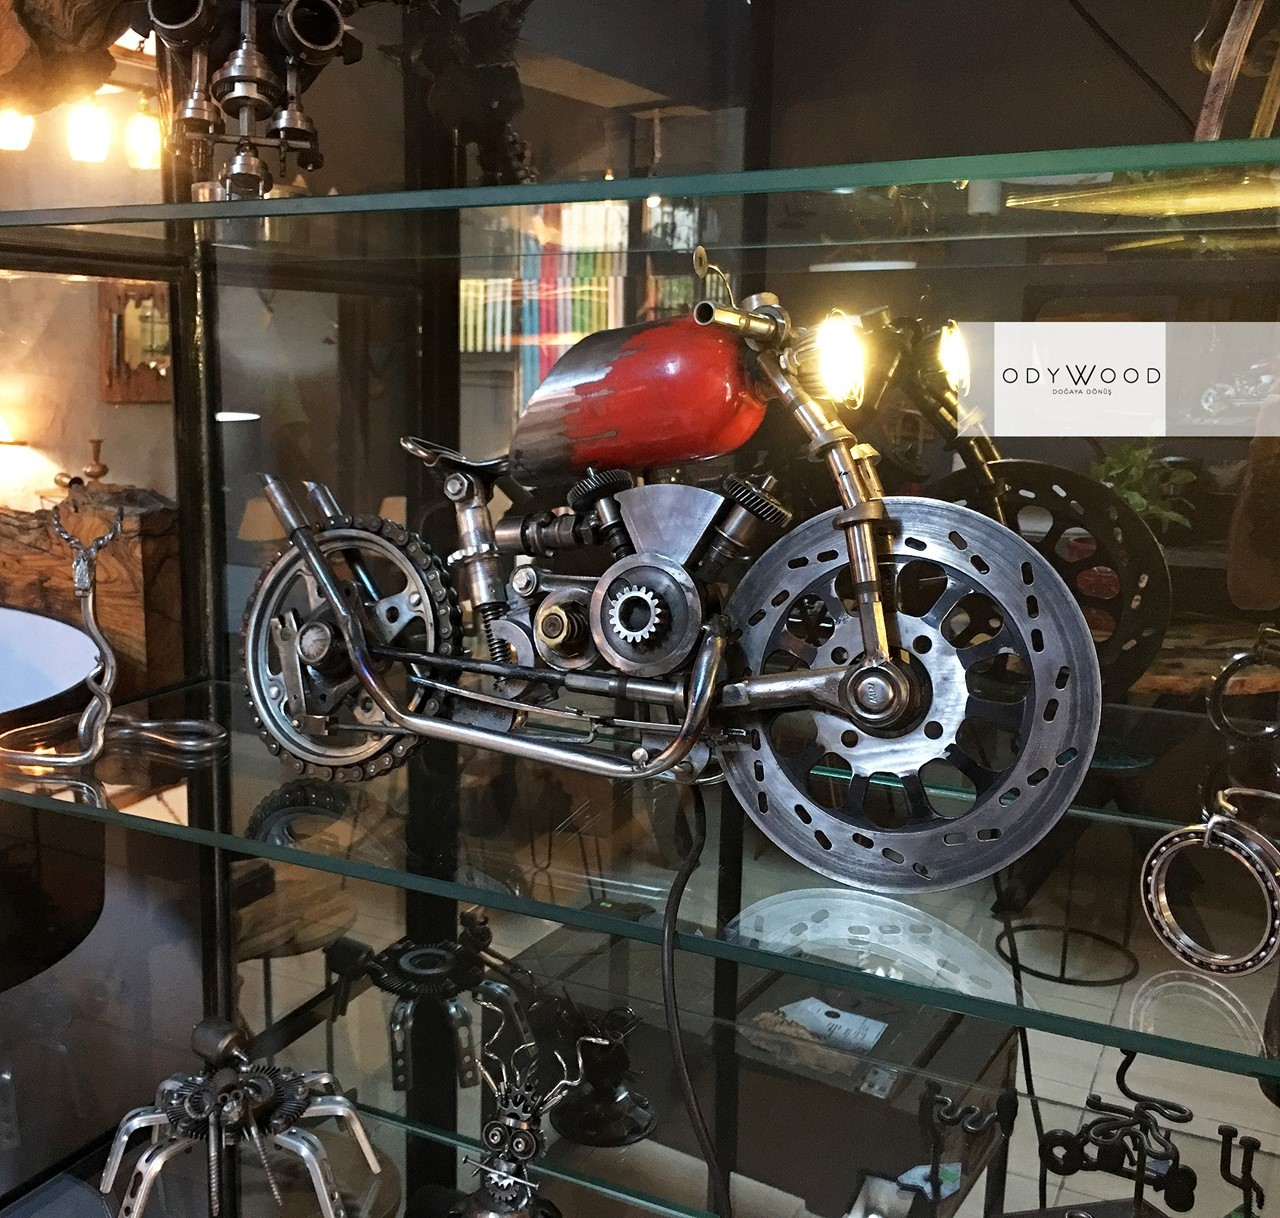 Metalsiklet v2 - Decorative Motorcycle'in resmi